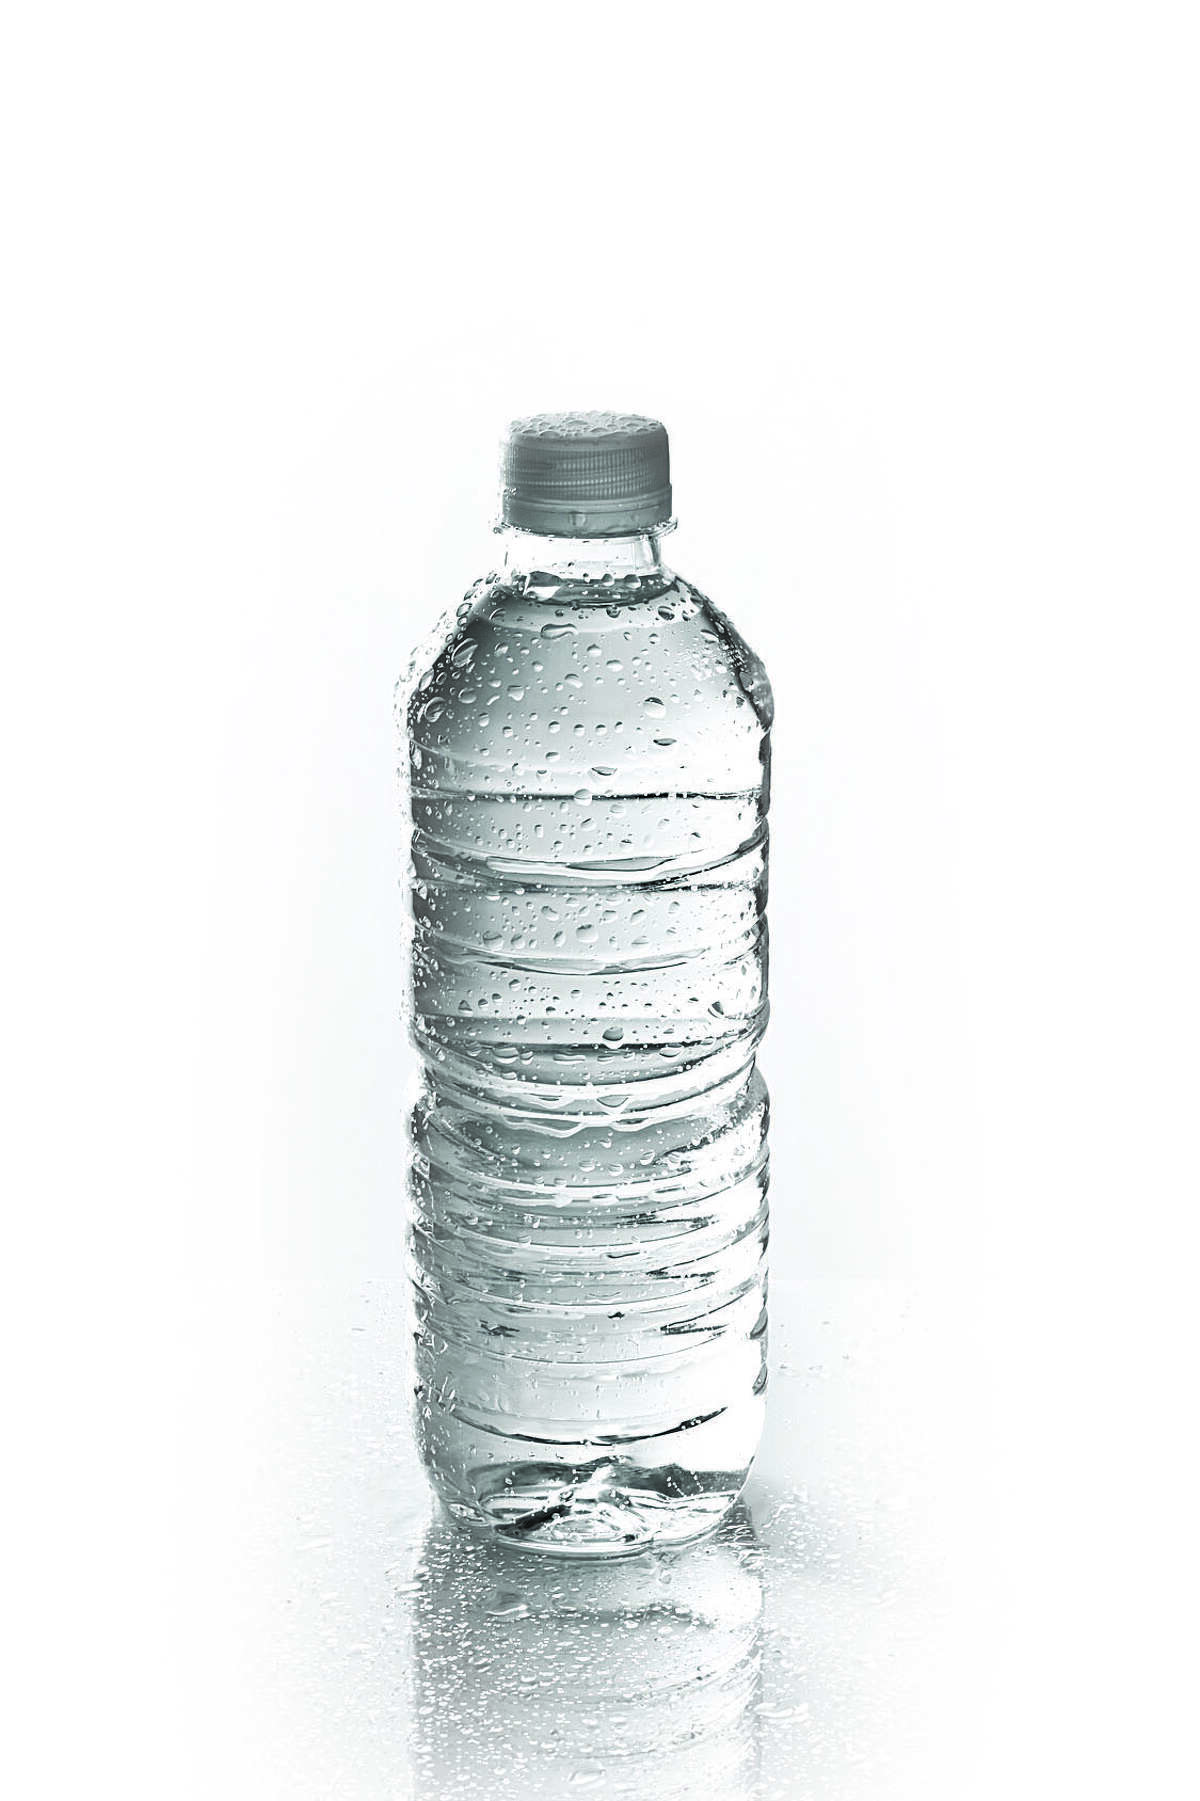 ALLOWED: 1 sealed, 20-ounce bottle of water